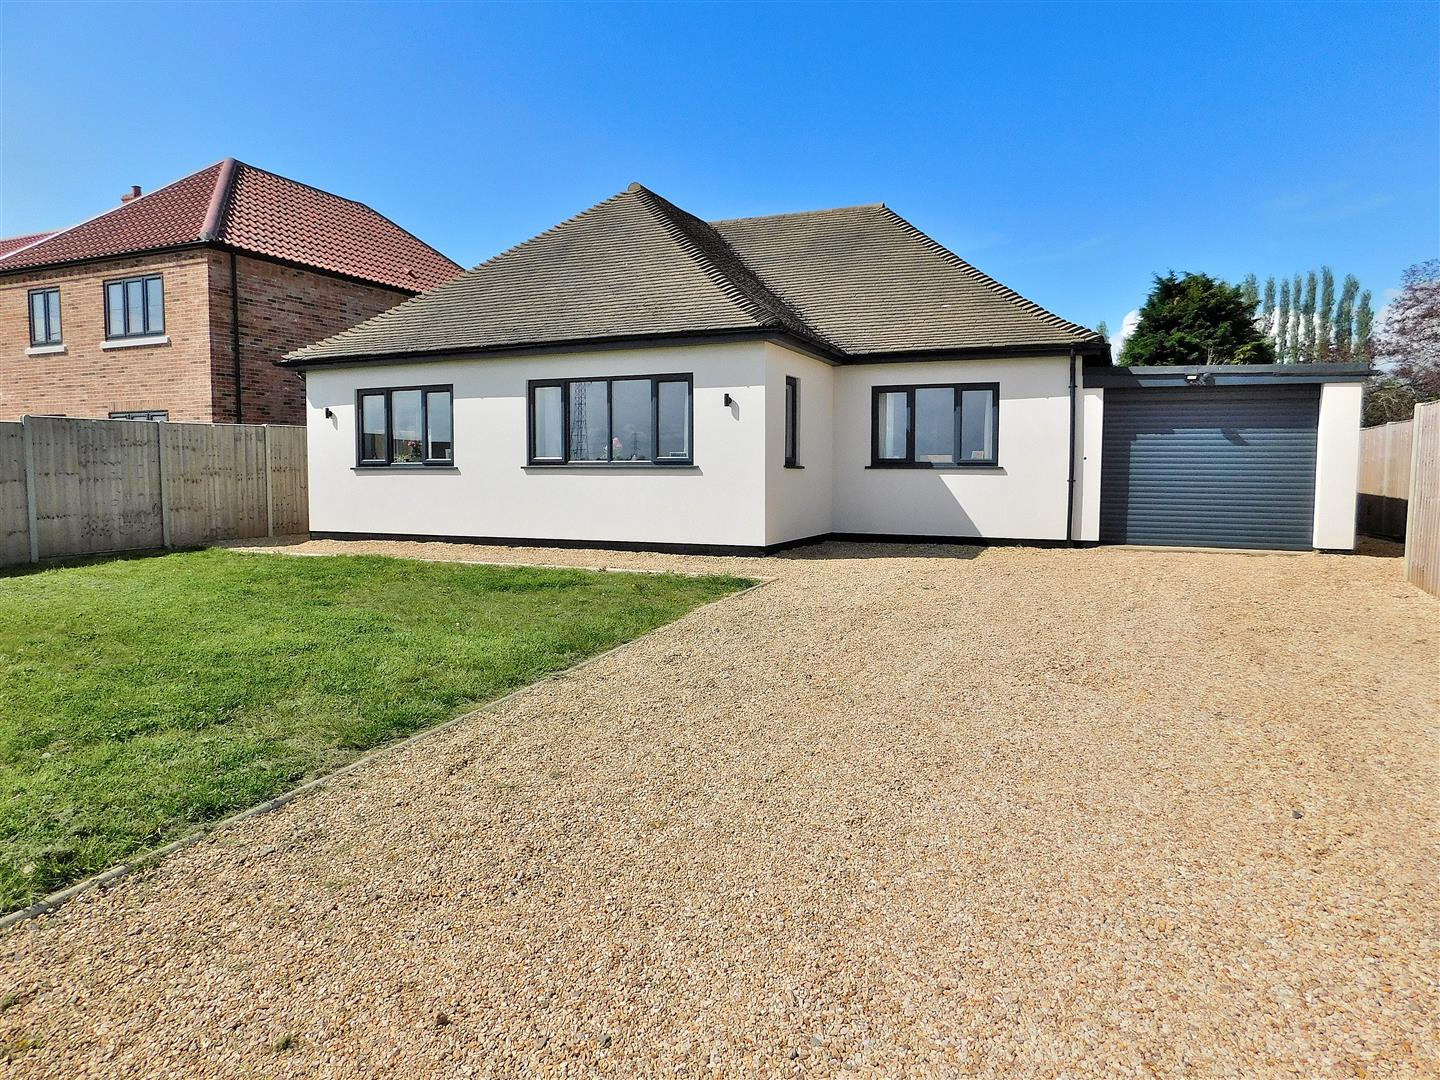 3 bed detached bungalow for sale in Mill Road, Wisbech, PE14